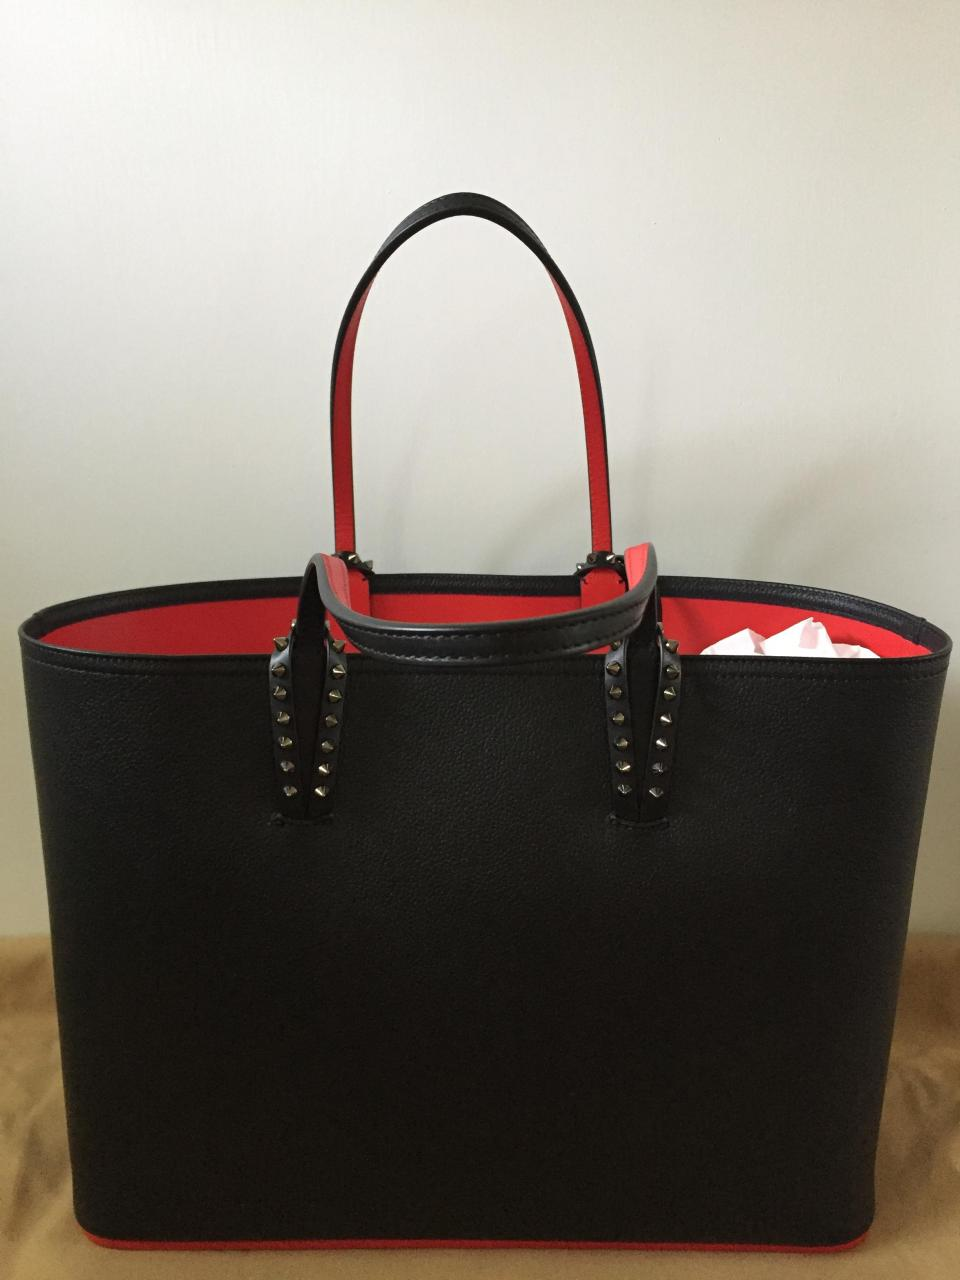 Handbag Replica Wholesale Center Christian Louboutin – Cabata Black Leather  Tote c7afef99079b9